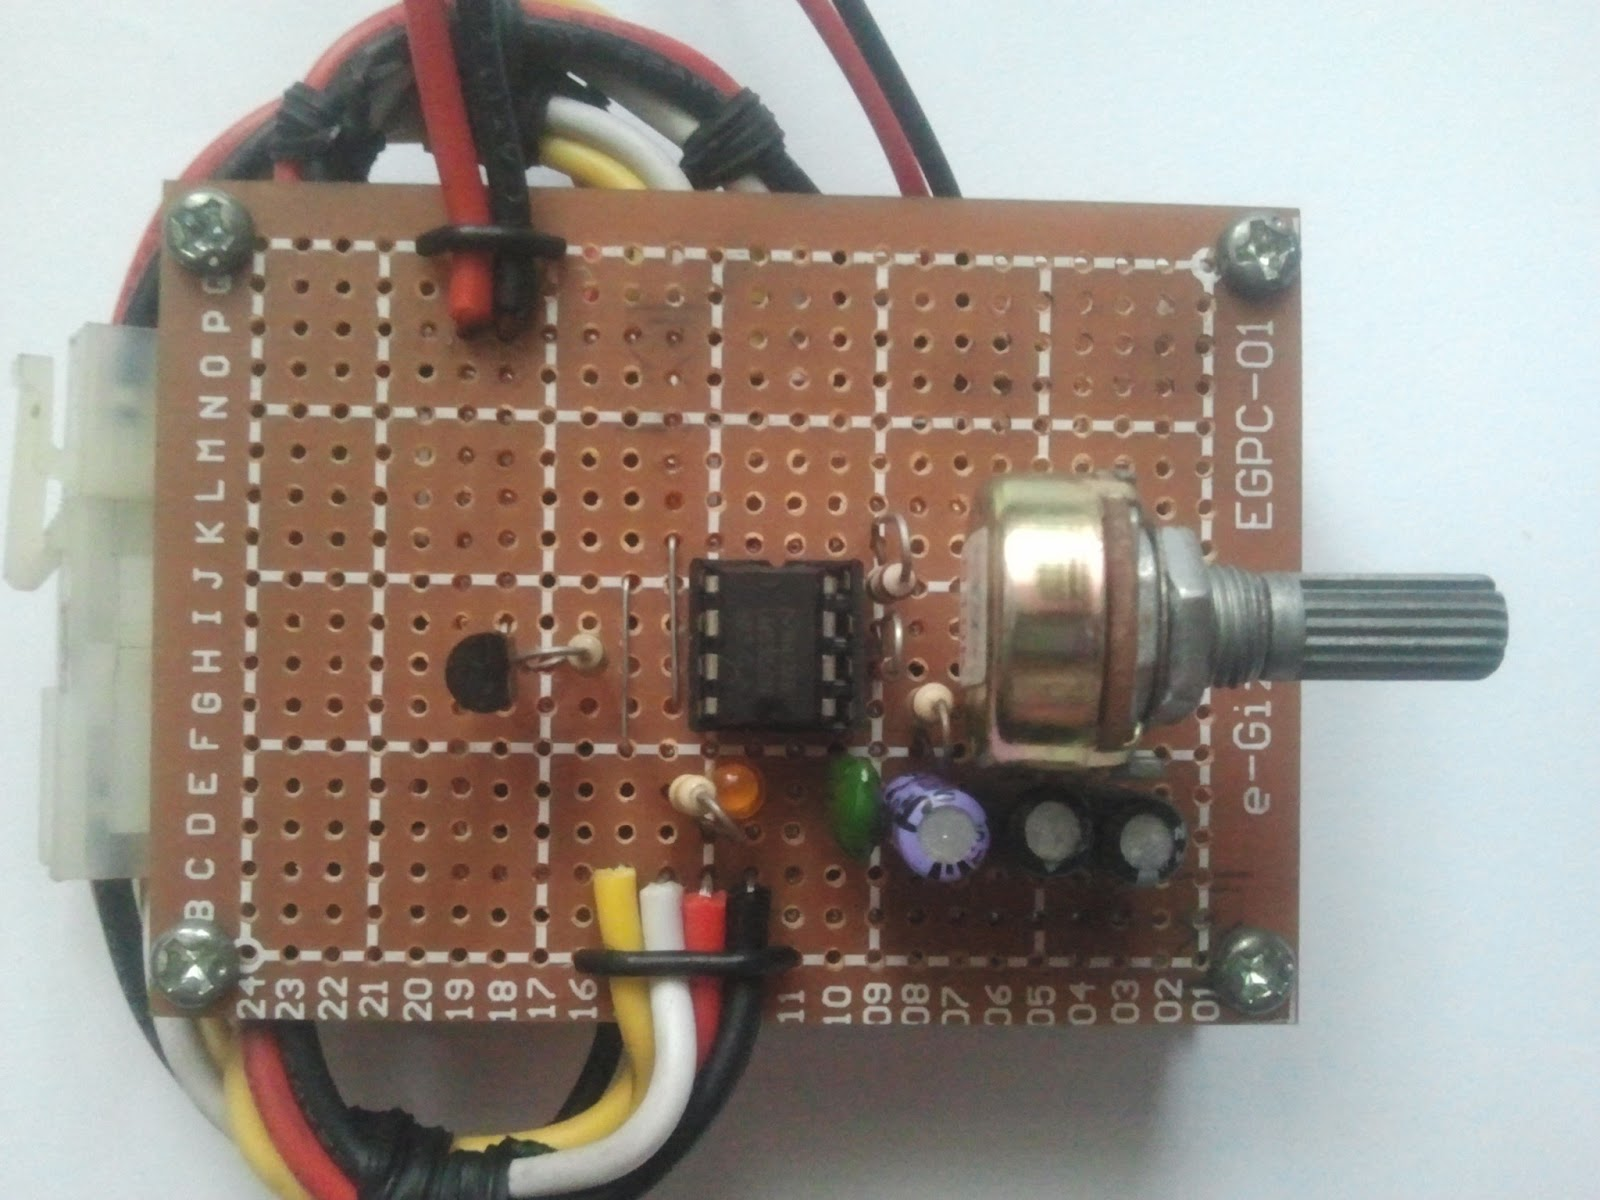 Mobotgeek Alitaptap A Strobe Light Controller For Motorcycle Led After Making The On Perforated Board Place Everything In Complete Device Which Is Composed Of Voltage Doubler From Http Electroschematicscom And Strip